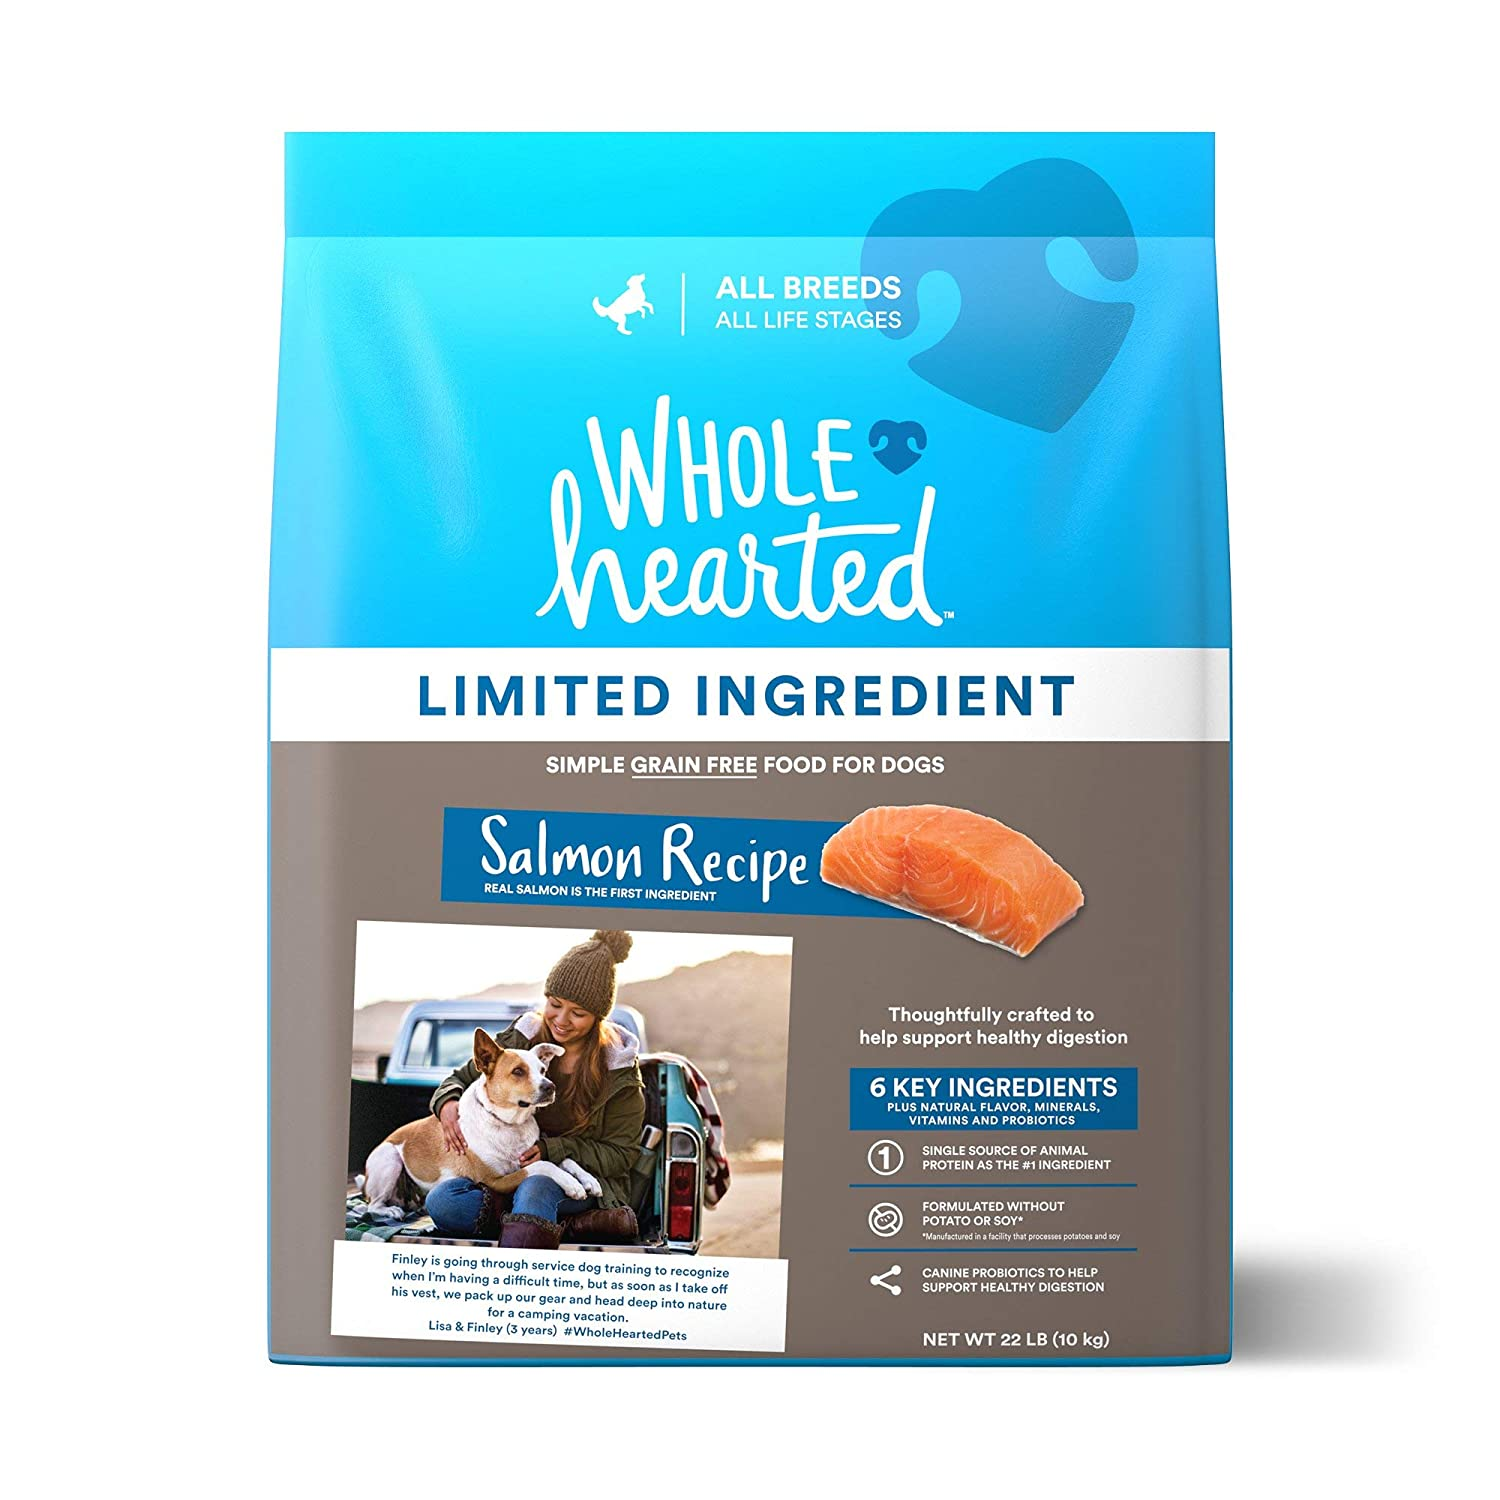 WholeHearted Grain Free Limited Ingredient Salmon Recipe Dry Dog Food for All Life Stages and Breeds